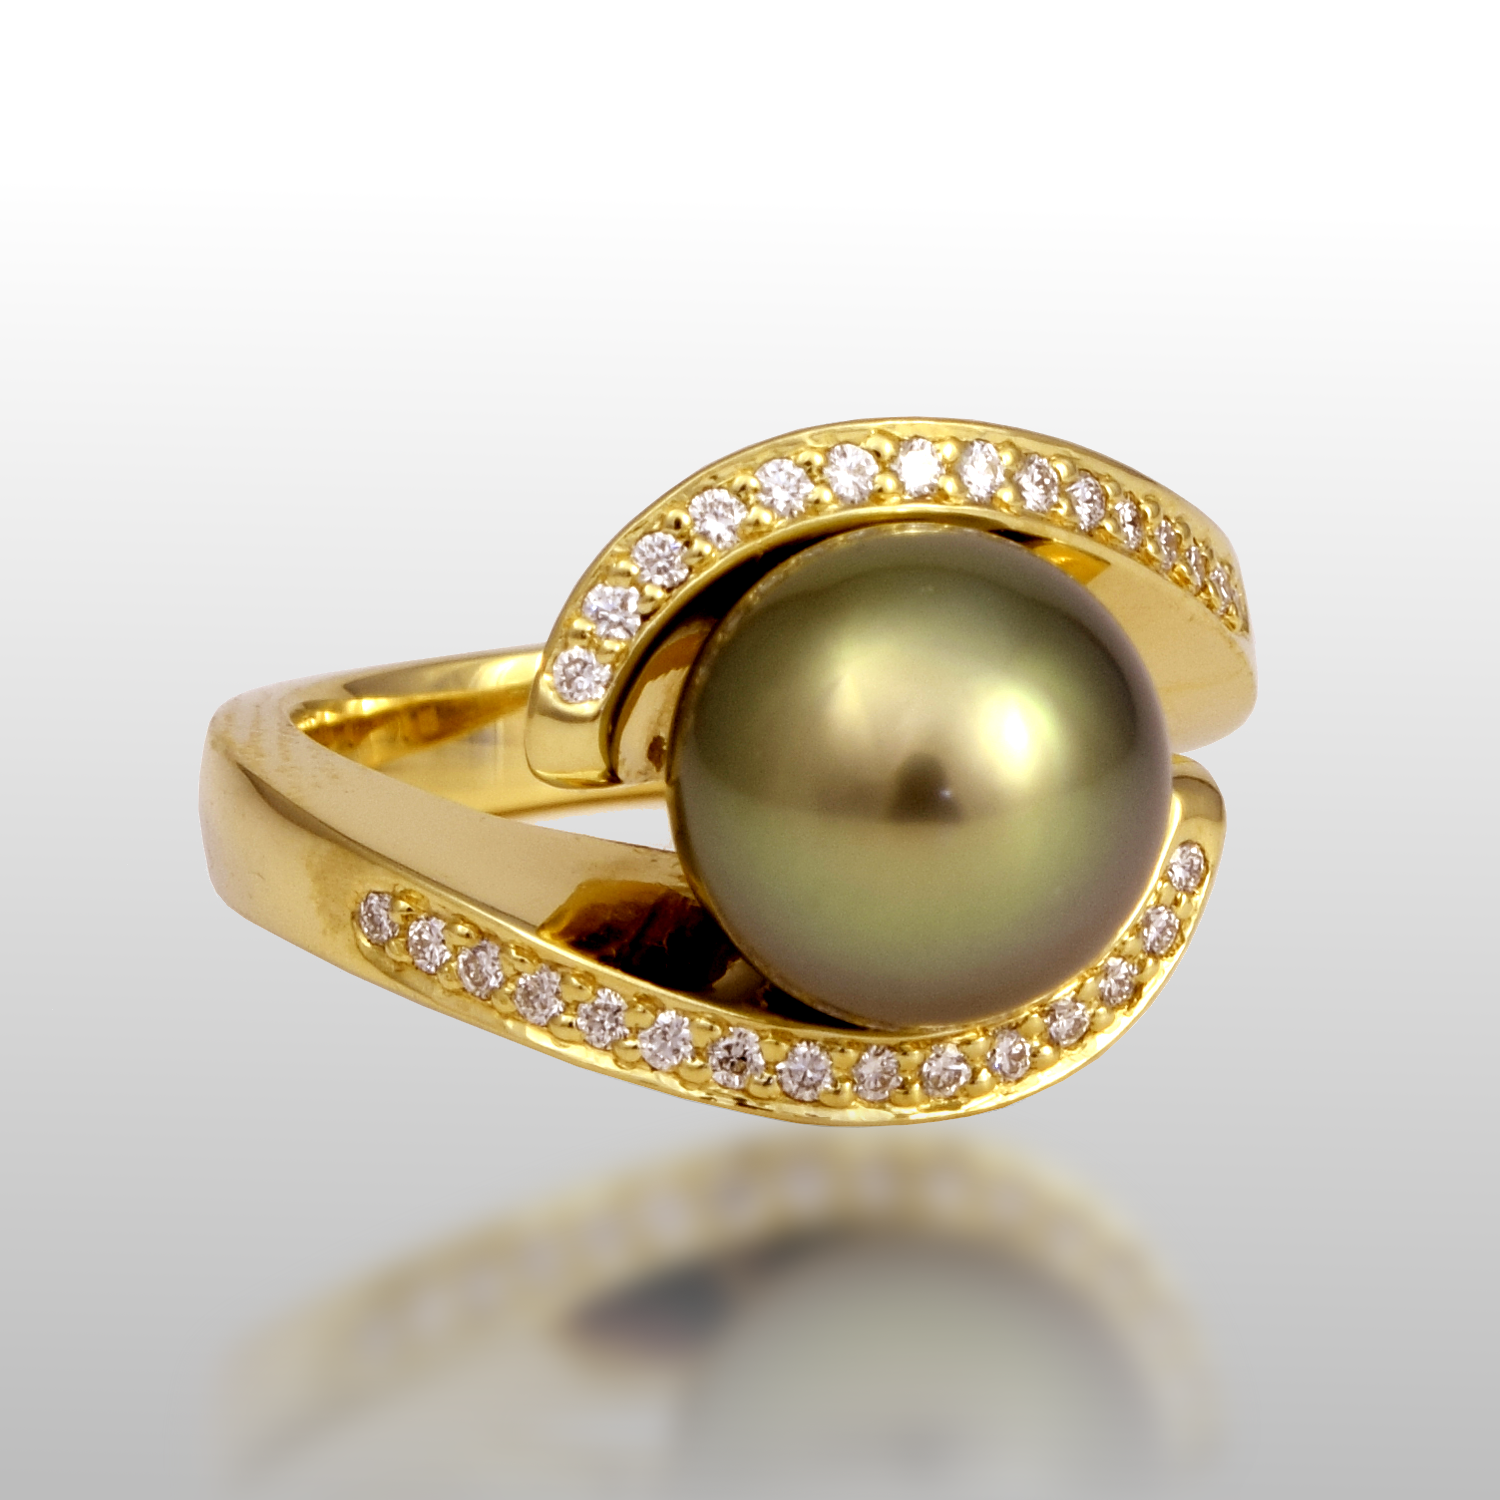 Tahitian South Sea Black 'Pearl Embrace' Ring in 18k Gold with Diamond Pavé by Pratima Design Fine Art Jewelry